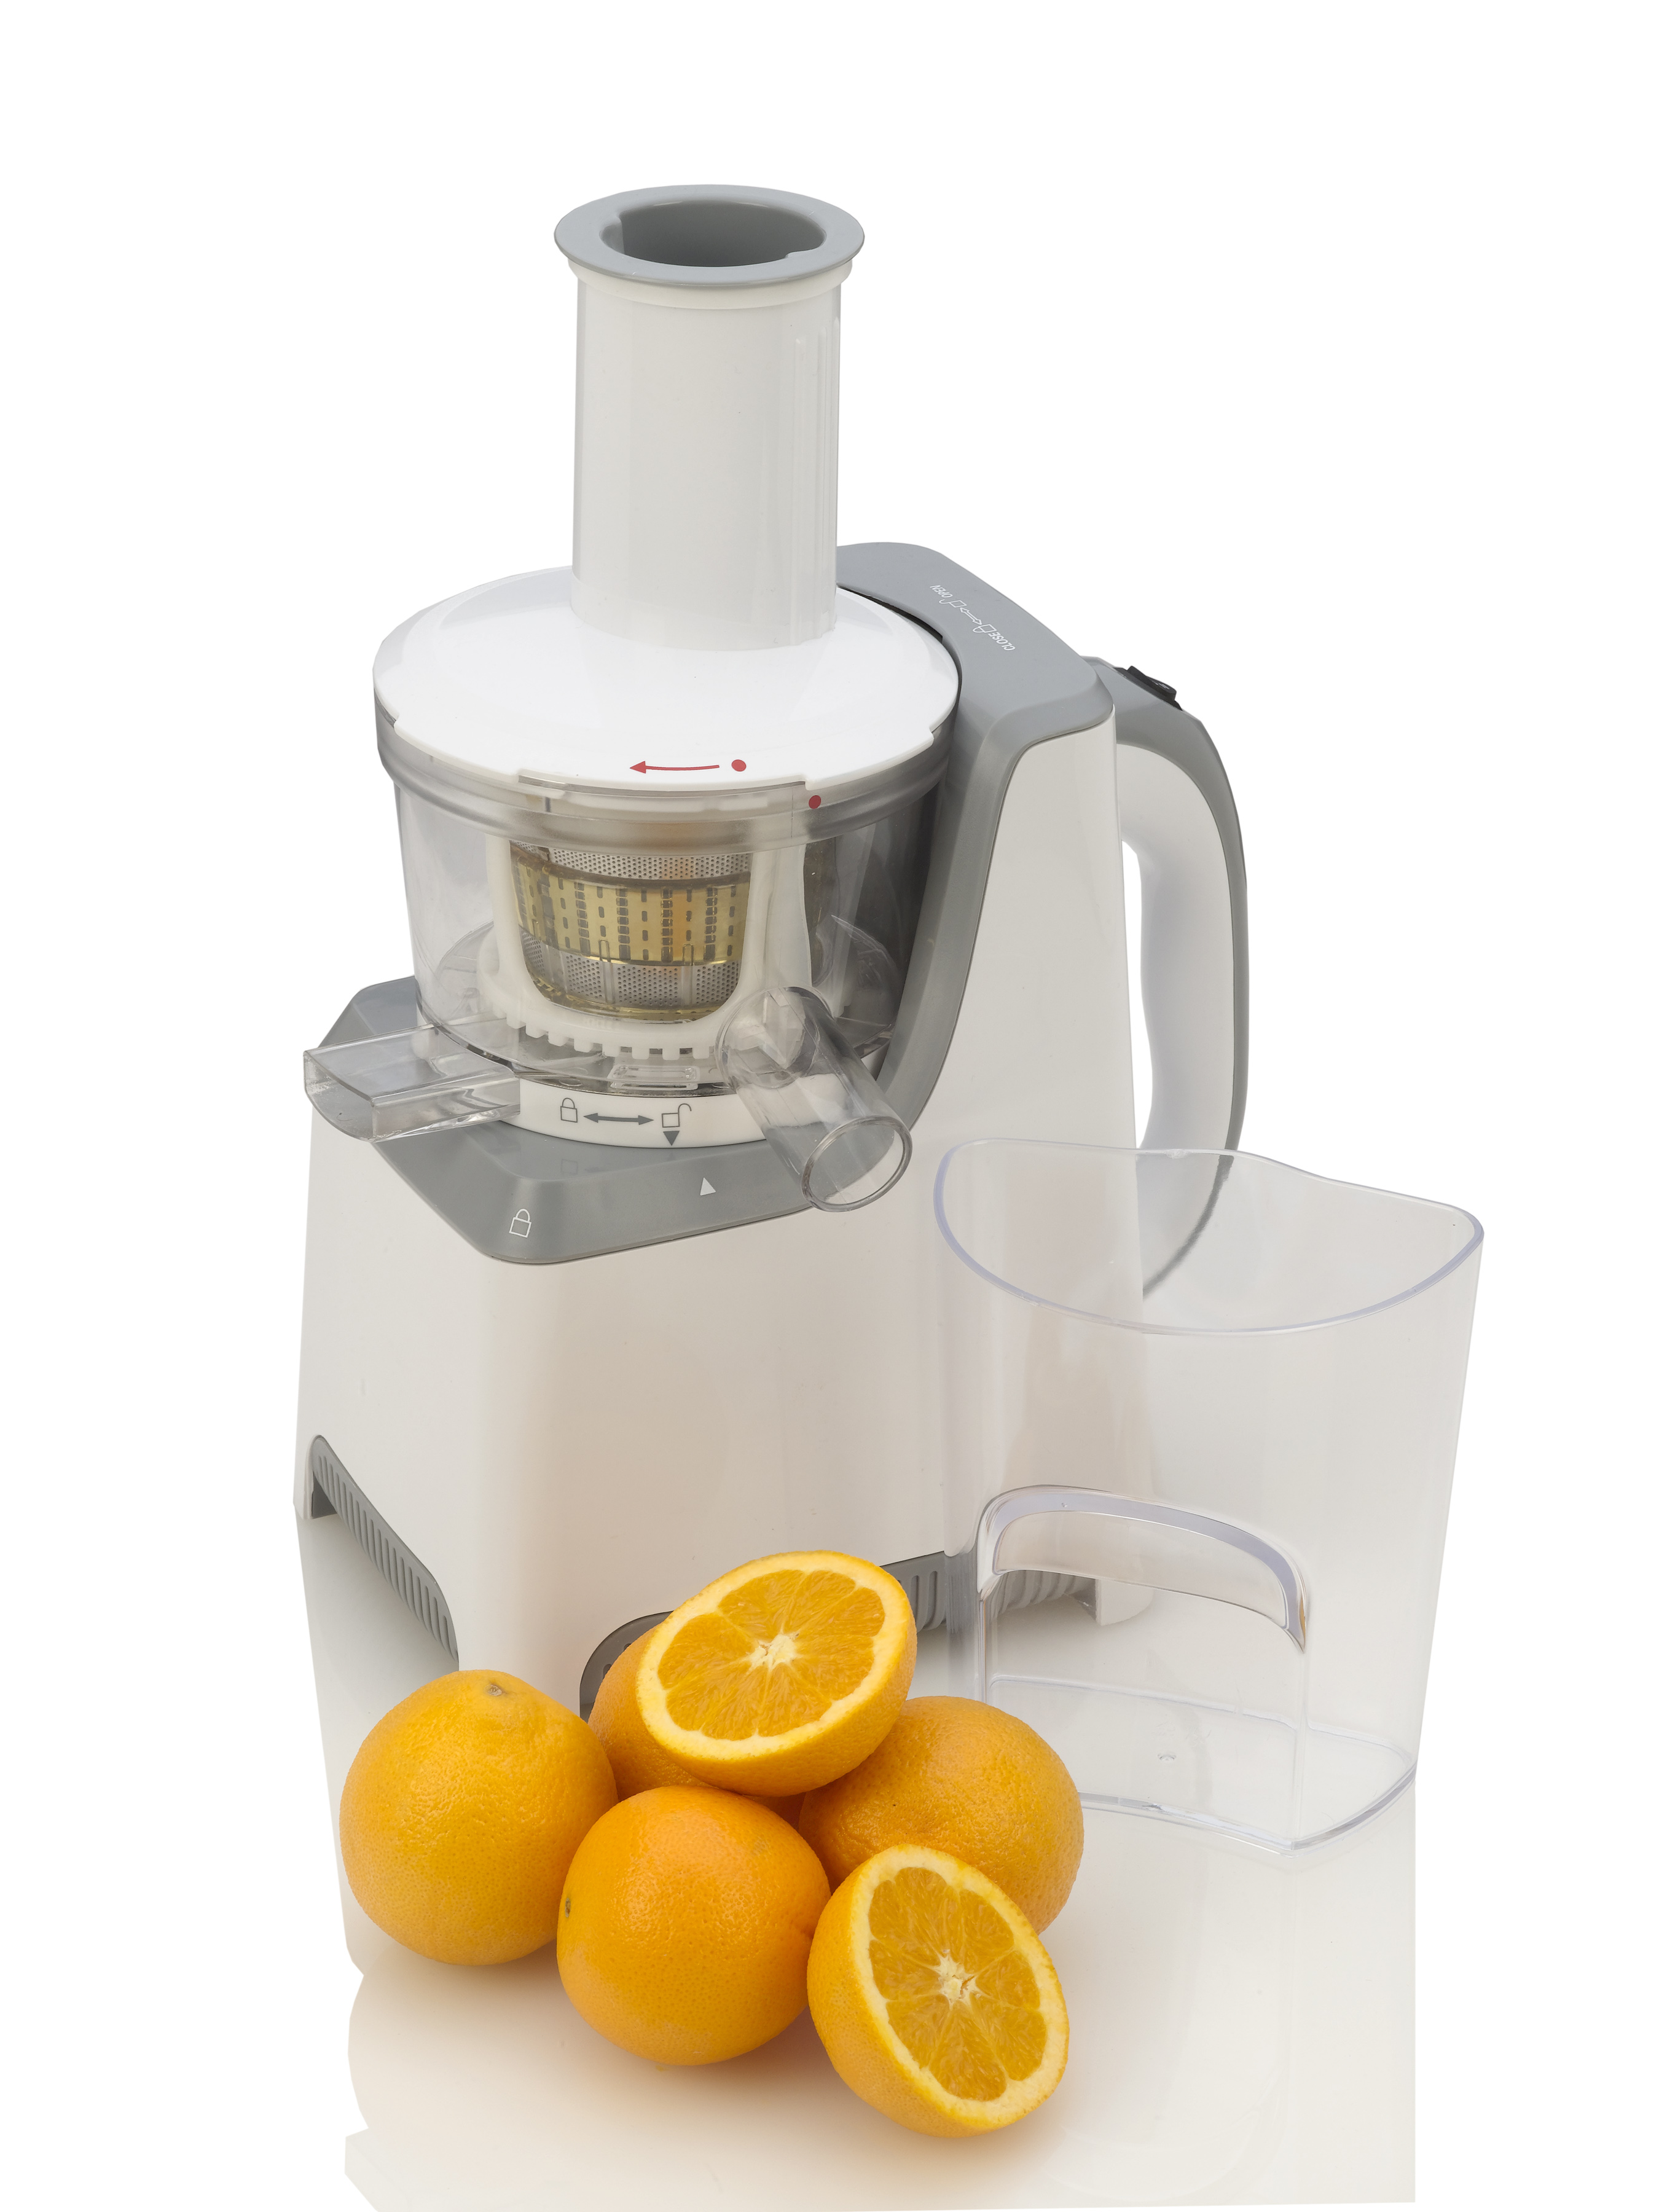 New Slow Juicer Signora : Fagor Upgrades Slow Juicer to the New Slow Juicer Platino kitchenwarenews